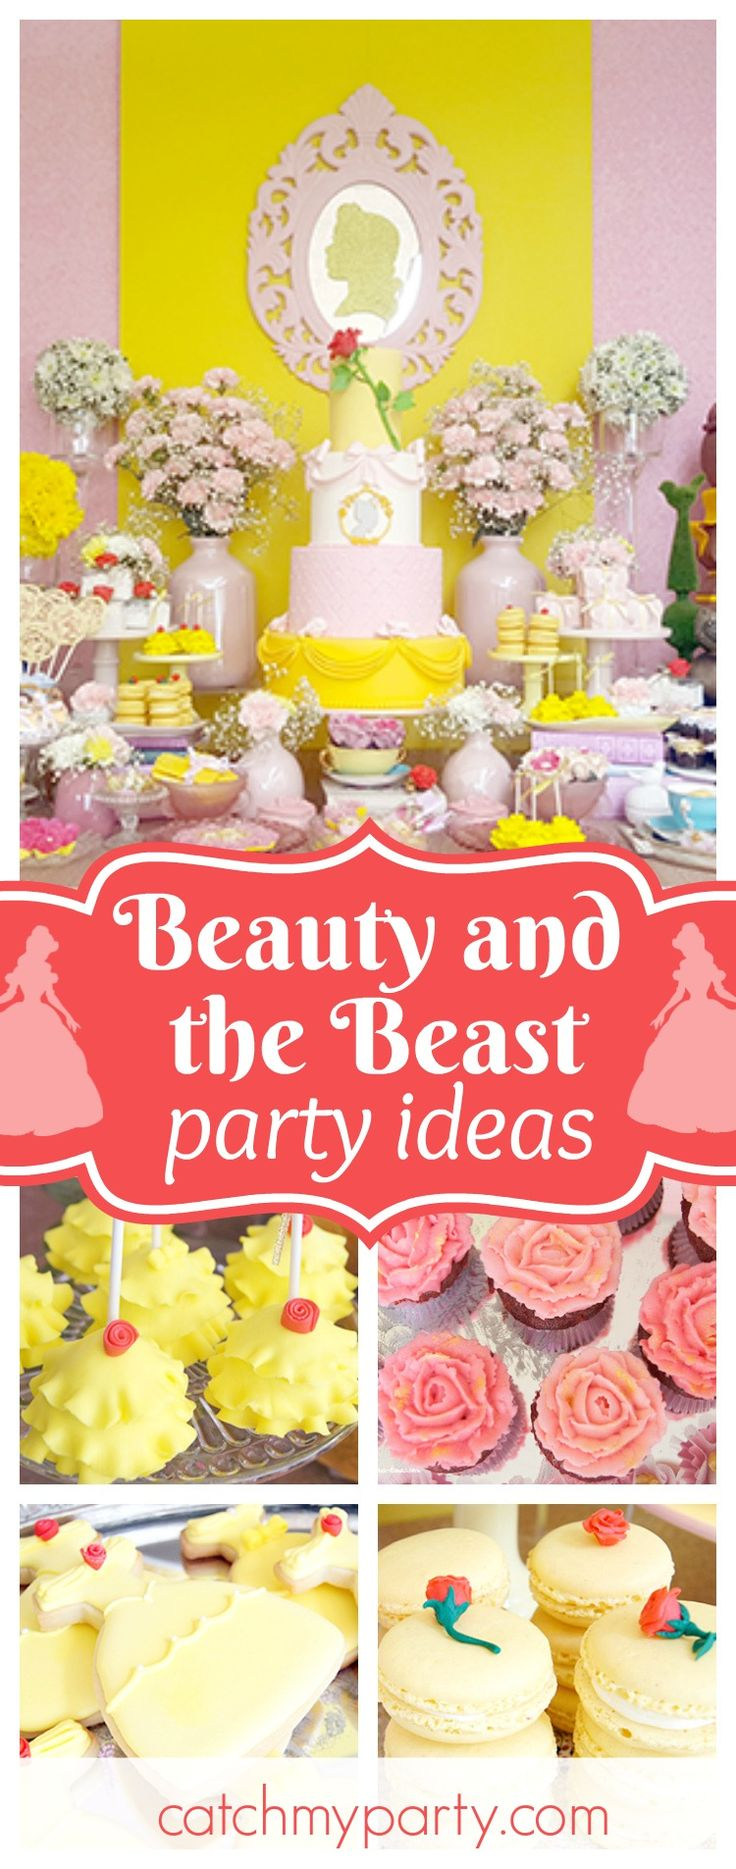 Be our Guest at this beautiful Beauty and the Beast Birthday Party!! The cake pops are adorable!! See more party ideas and share yours at CatchMyParty.com